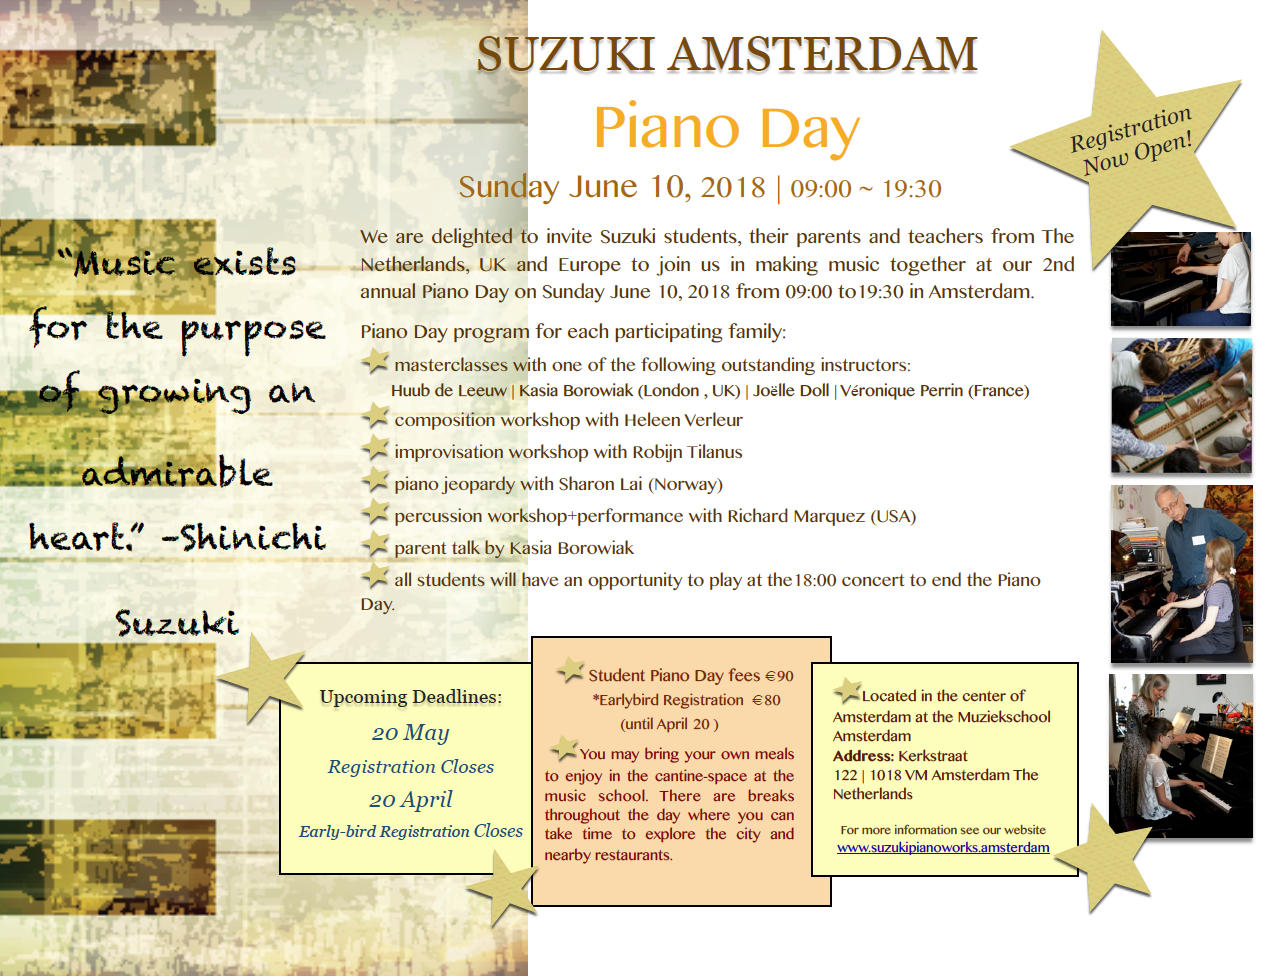 About Suzuki Piano Day